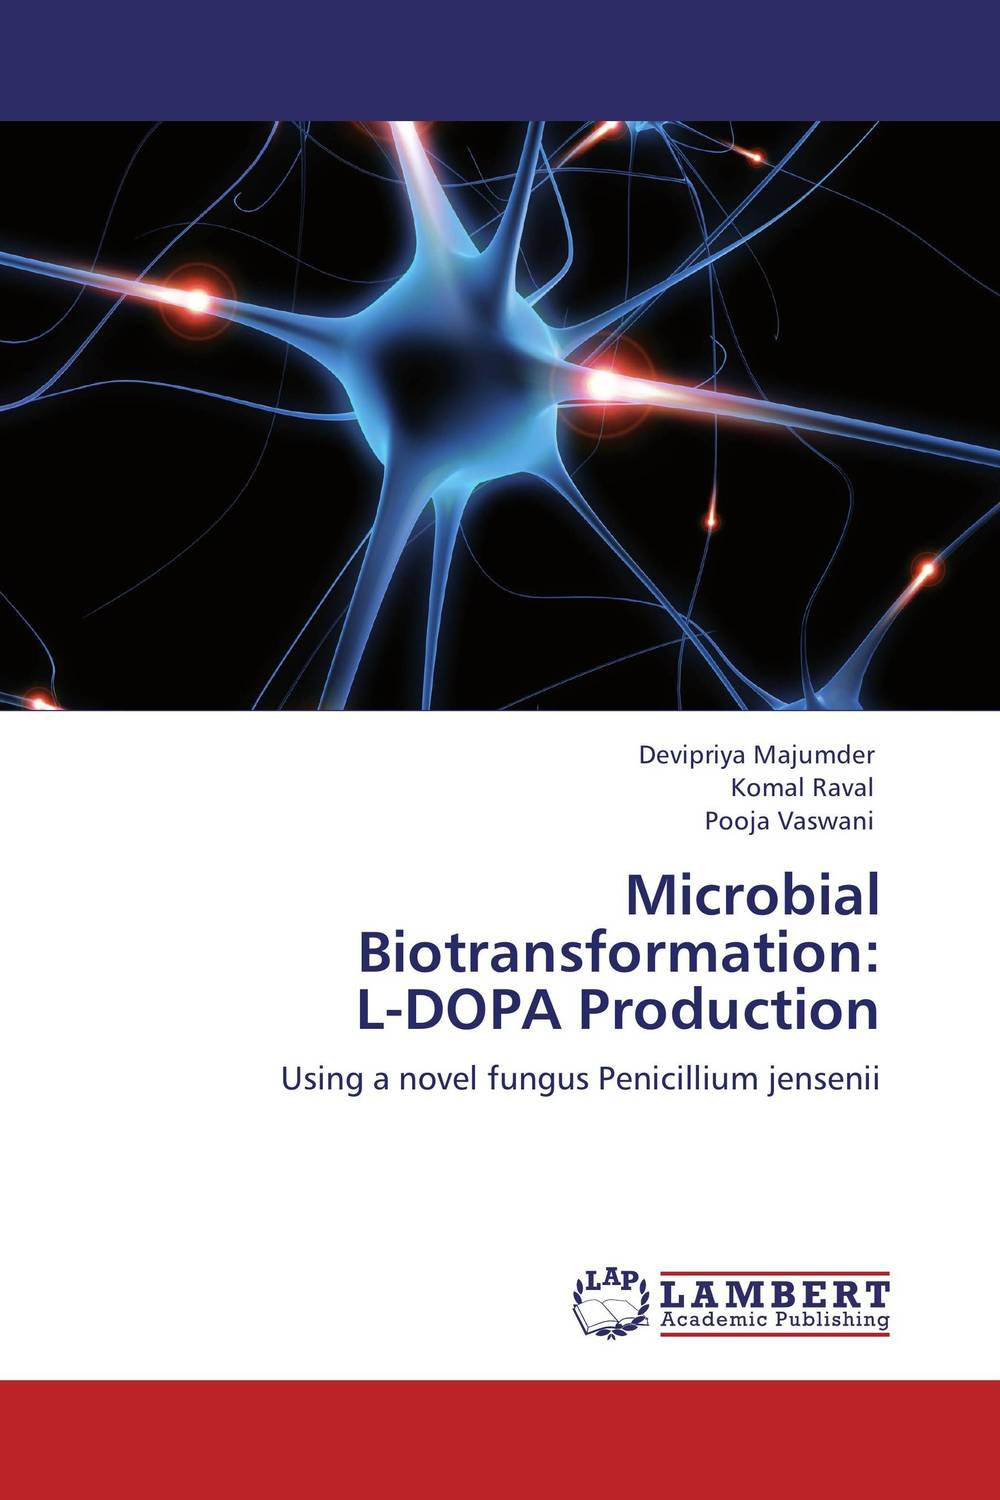 Microbial Biotransformation: L-DOPA Production evaluation of aqueous solubility of hydroxamic acids by pls modelling